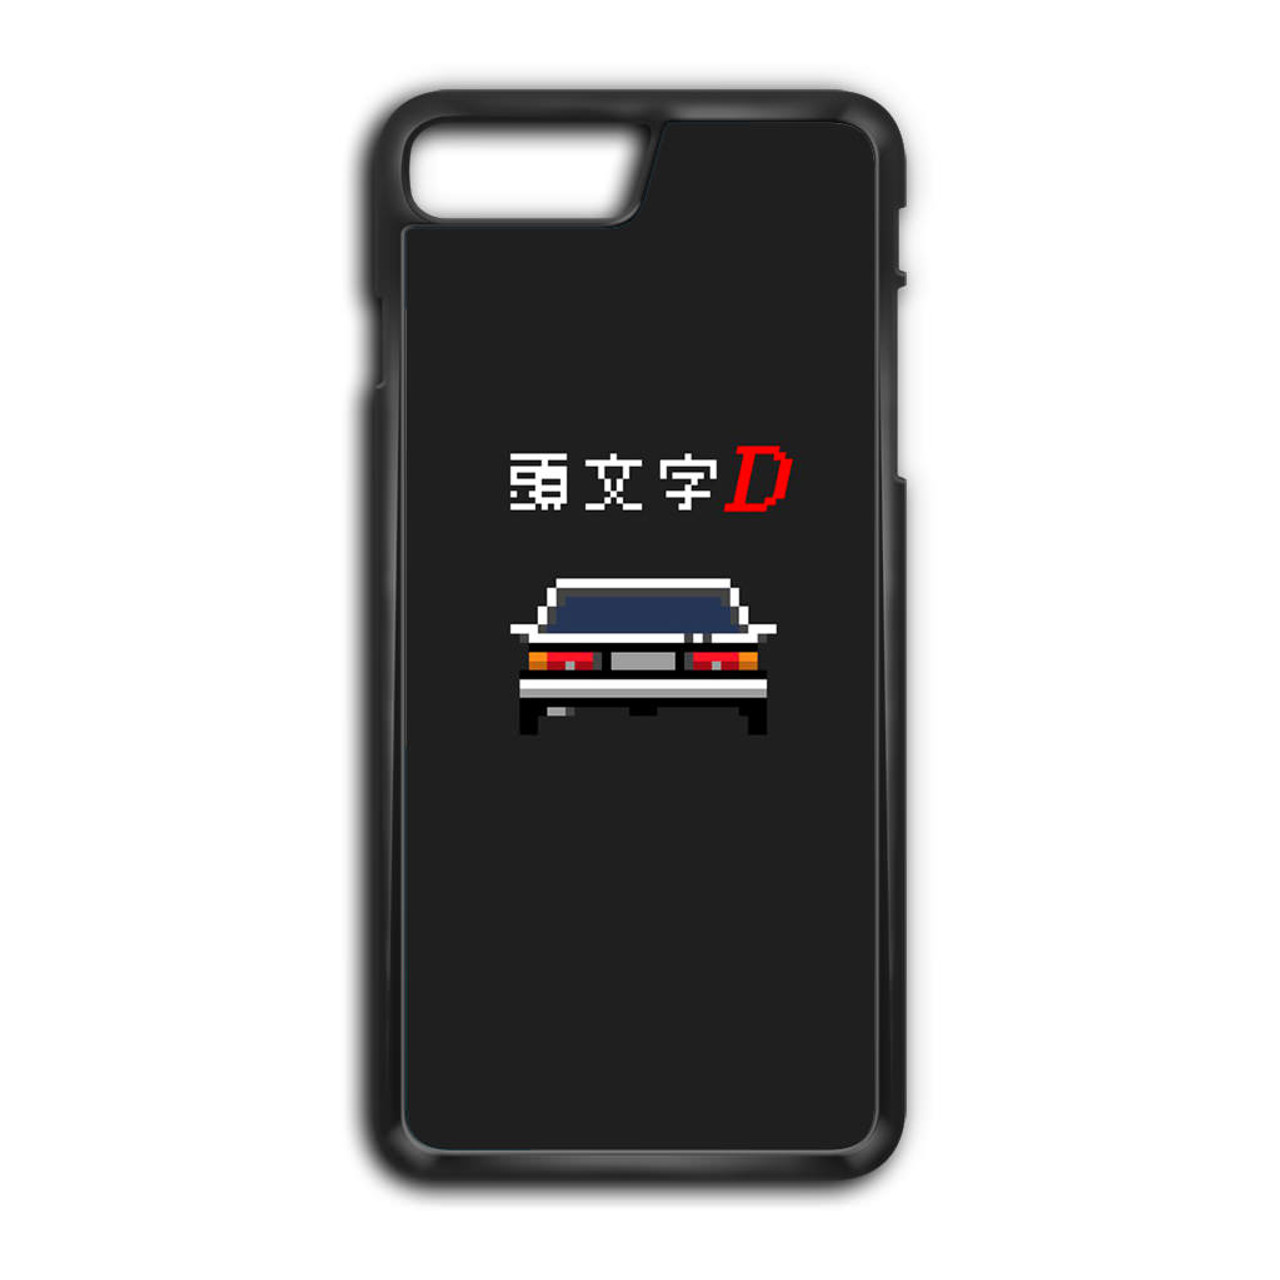 size 40 98864 429c9 Initial D Pixel Art iPhone 7 Plus Case